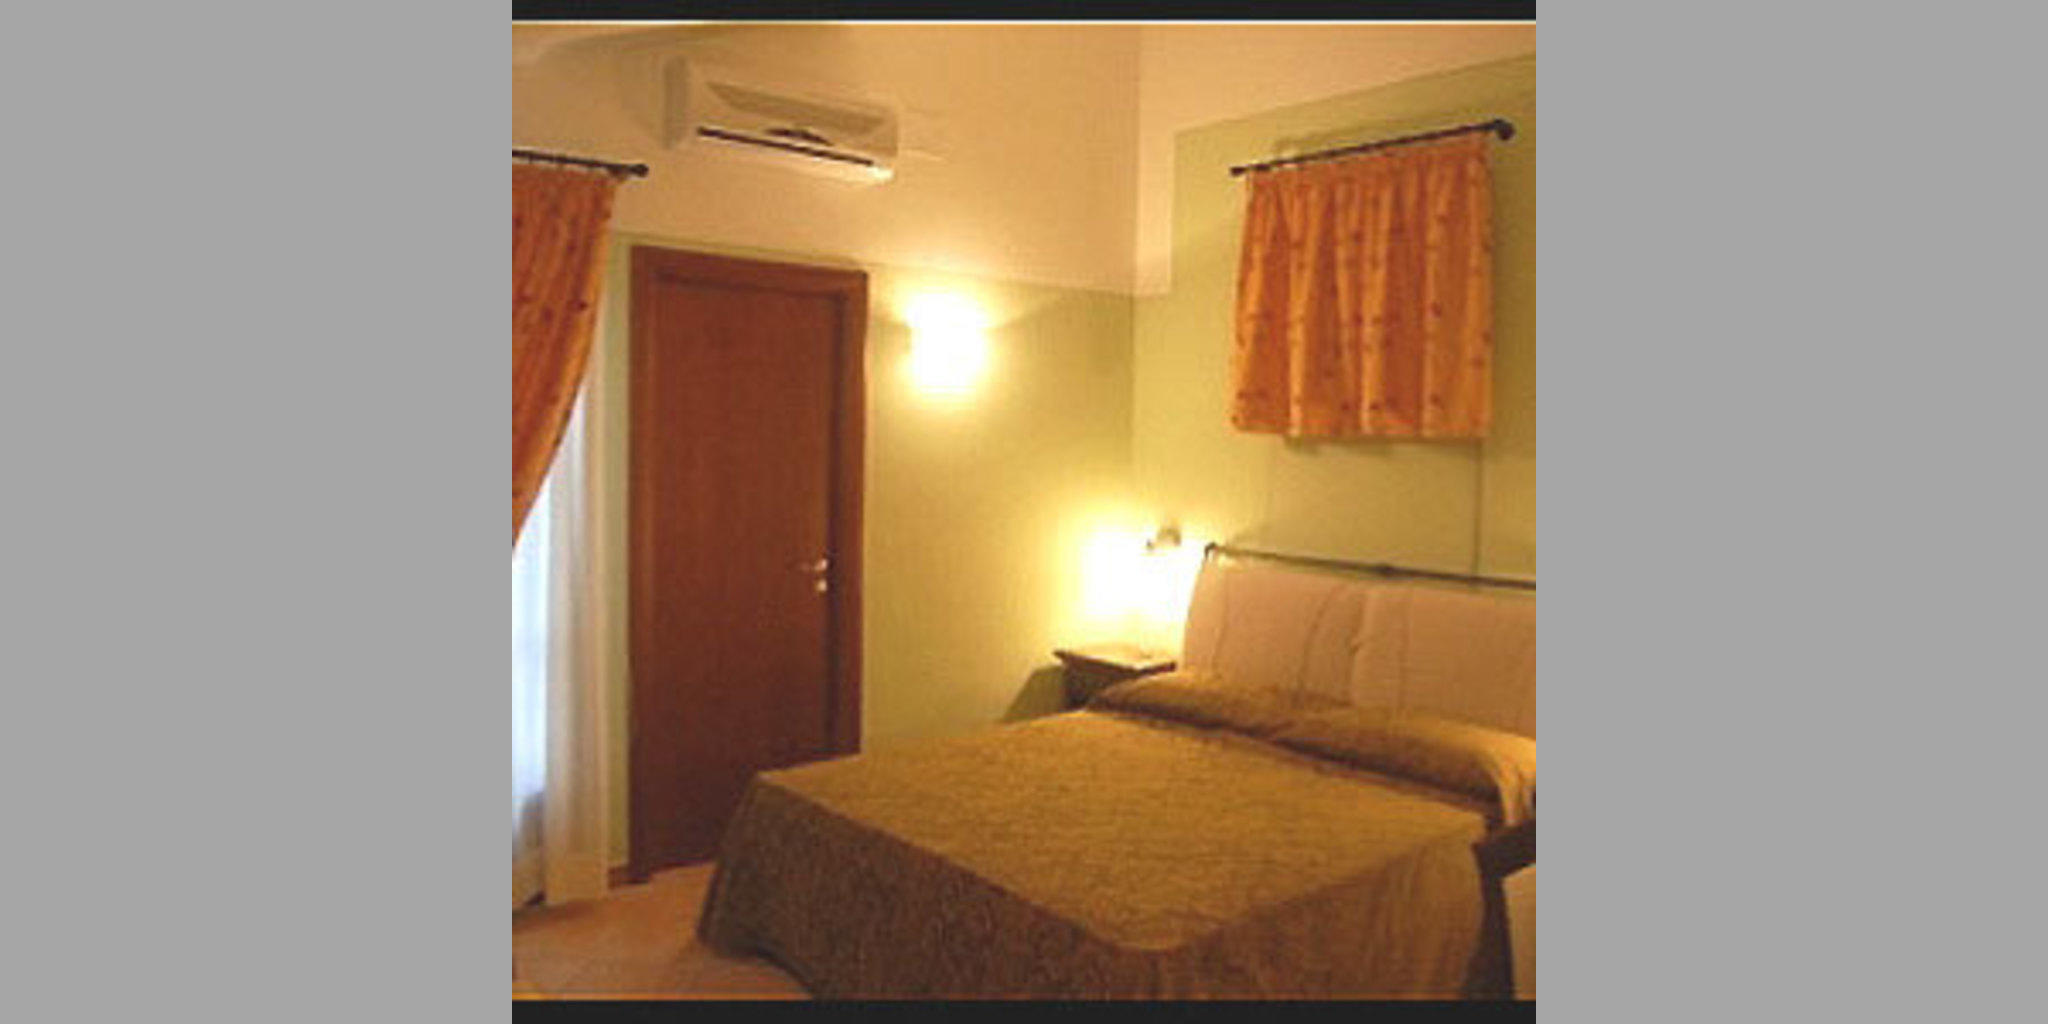 Bed & Breakfast Albanella - Santa Sofia